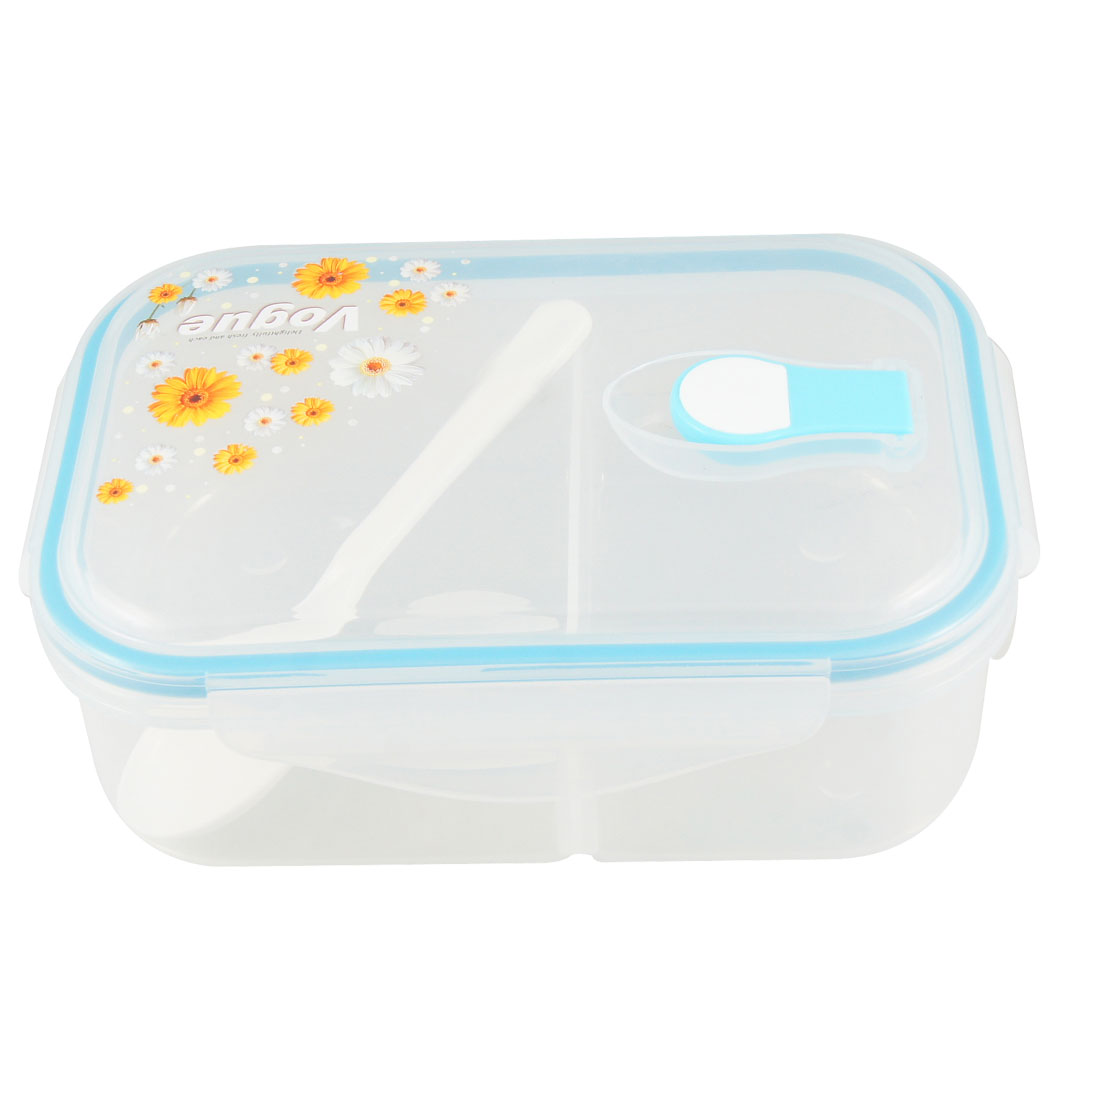 Chrysanthemum Flowers Print Plastic Blue Clear 2 Compartments Lunch Box w Spoon